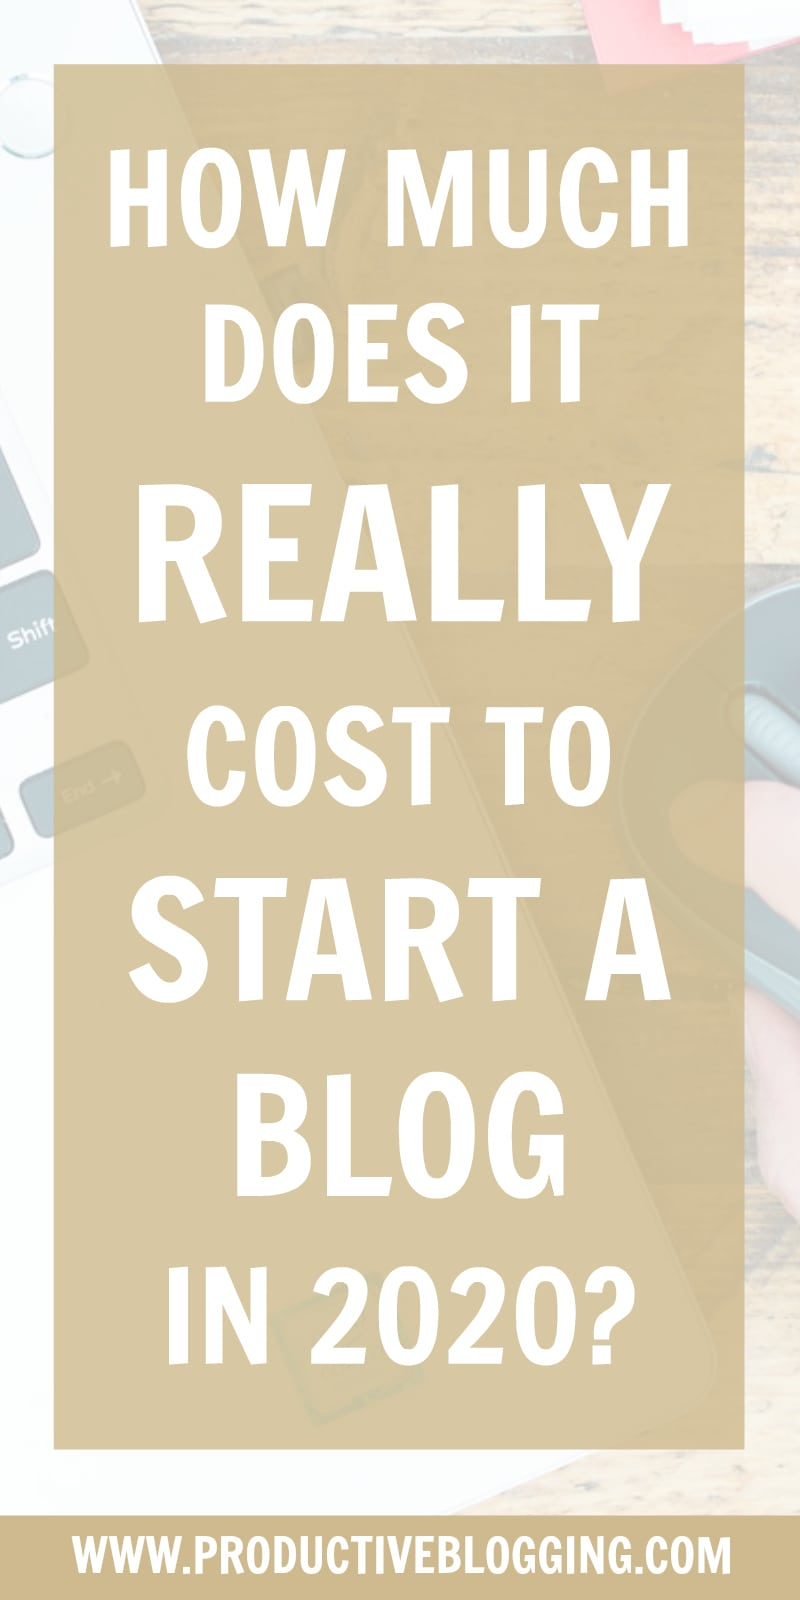 Want to start a blog, but don't want to waste your money? In this article I explain how much it really costs to start a blog, what you really need to spend money on right at the start and what can wait until later (plus why starting a free blog is a really, really bad idea!) #startablog #bloggingcosts #bloggingexpenses #blogginglife #blogging #blogger #professionalblogger #bloggingismyjob #solopreneur #mompreneur #fempreneur #makemoneyblogging #bloggingbiz #bloggingtips #productiveblogging